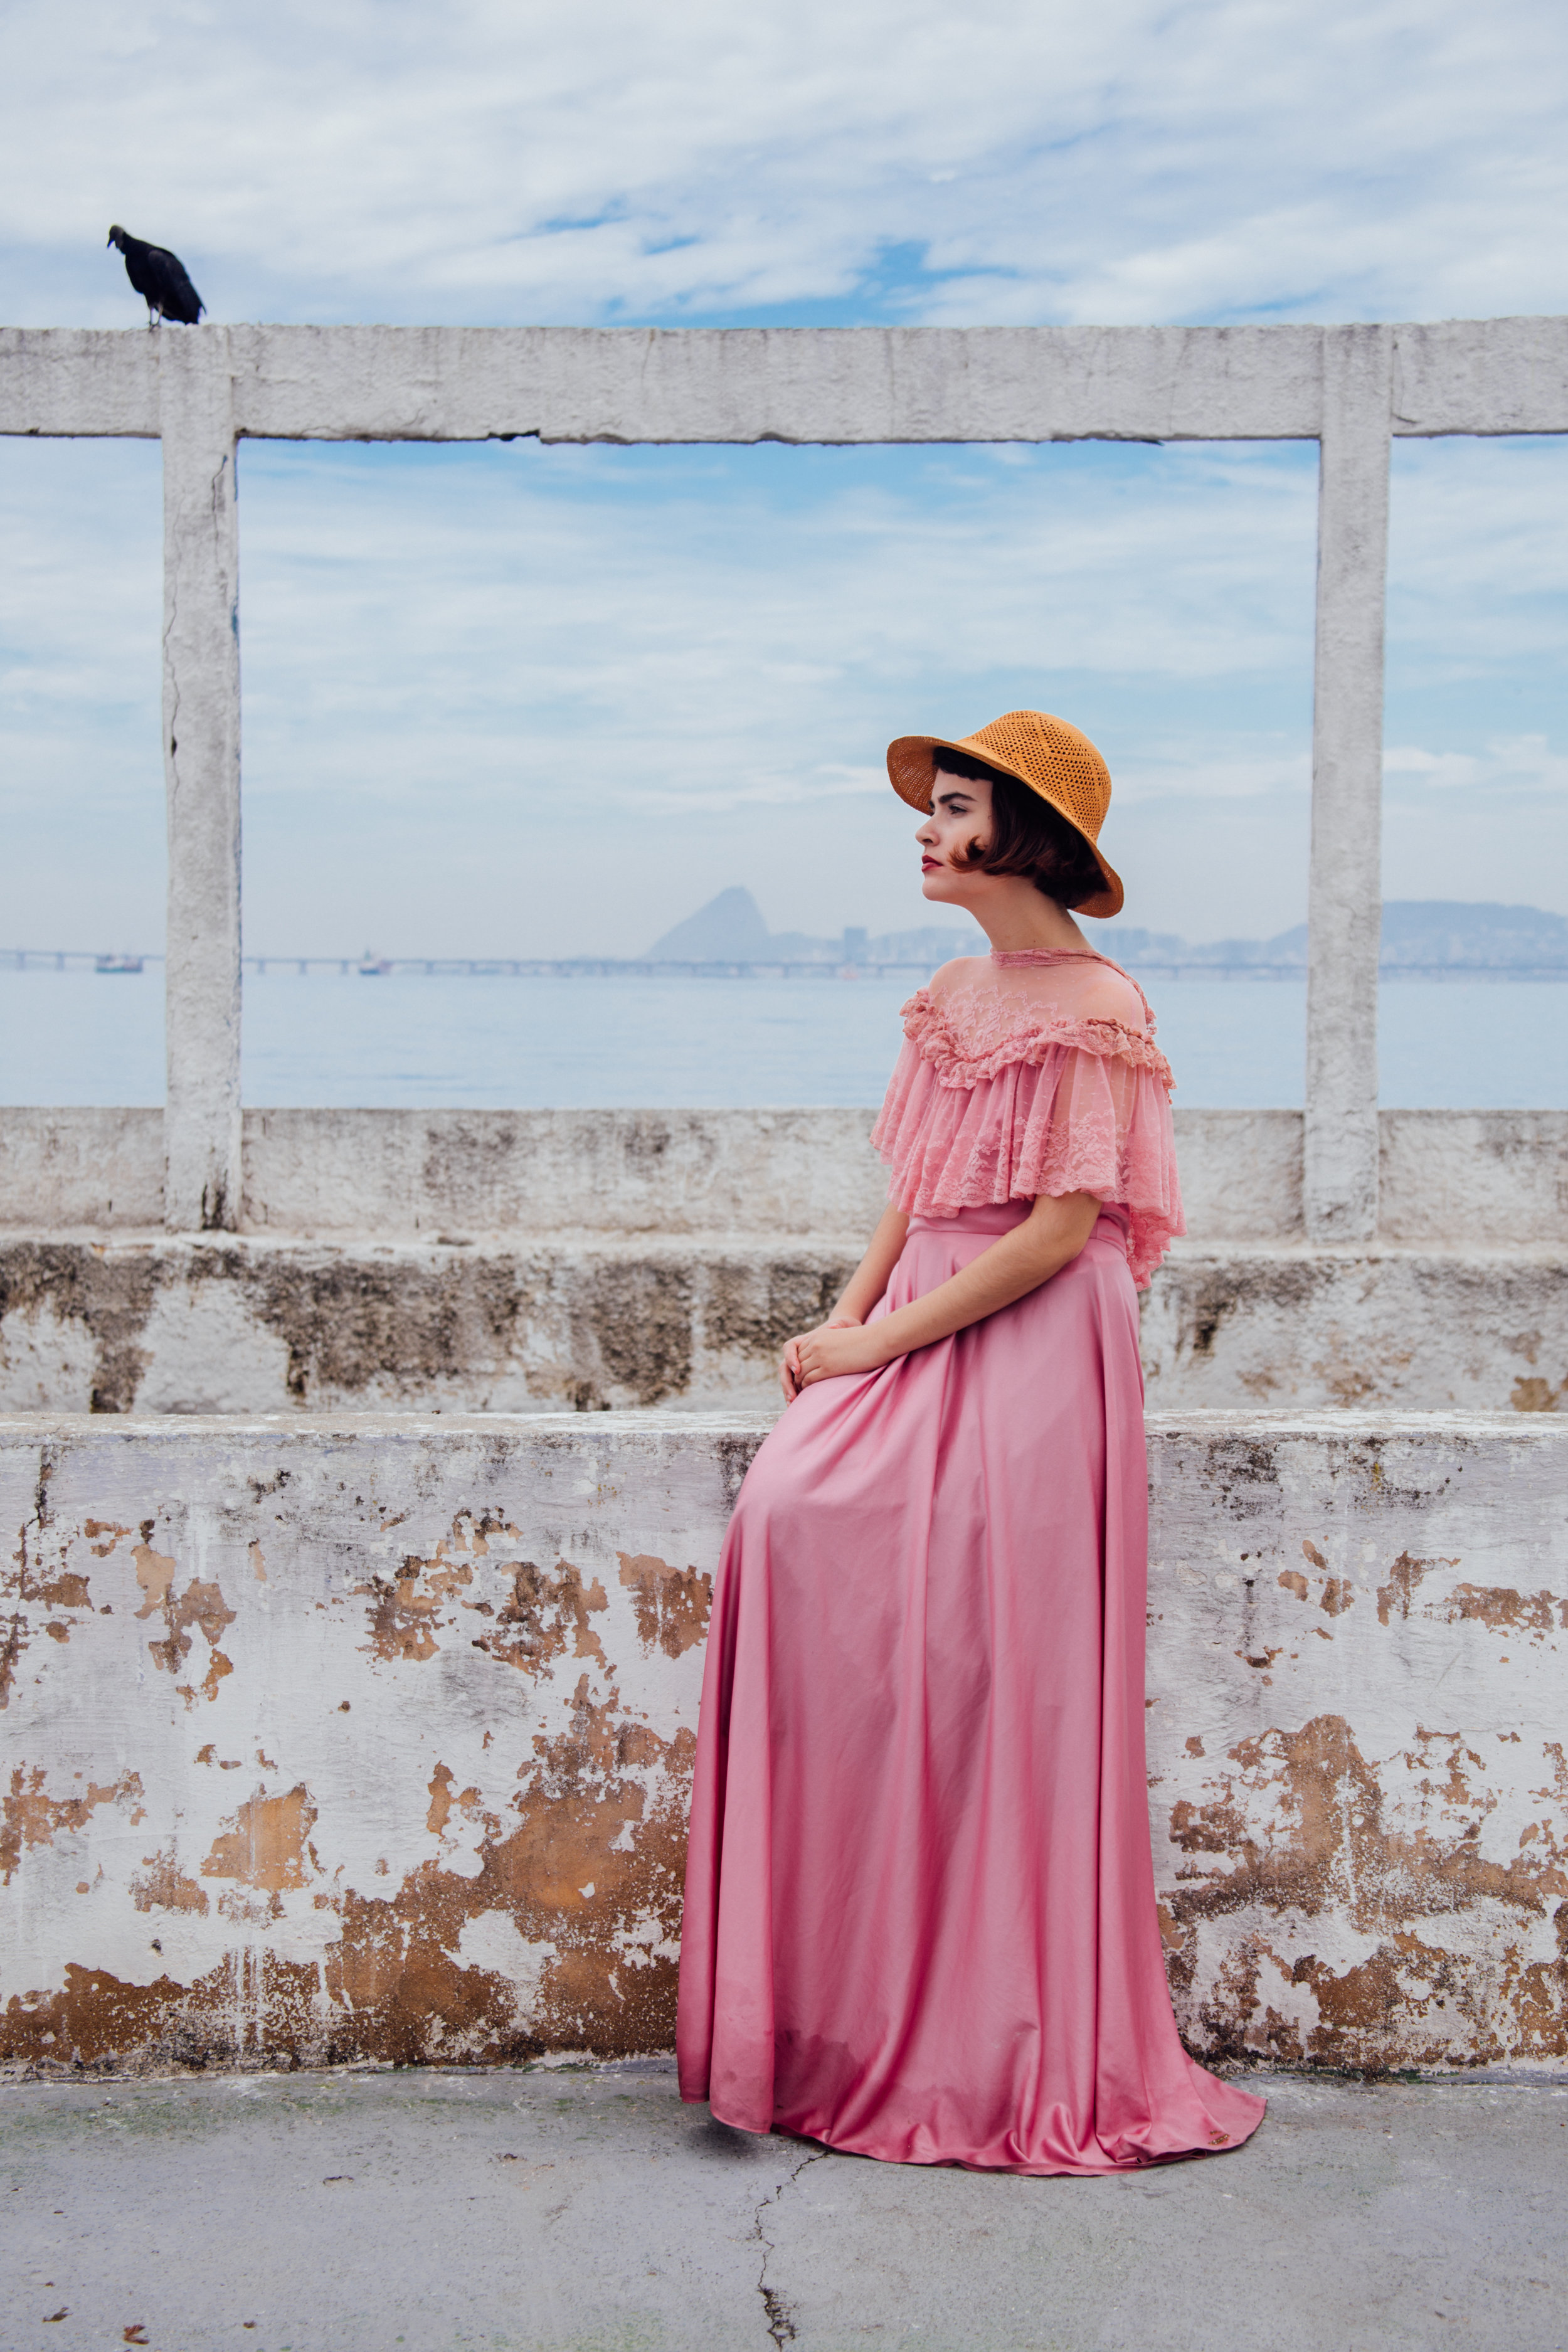 Consciously Connected Travel - CC Journal - Wellness   Why is it so hard to be alone? - Conscious Travel - Solo Travel - Women only travel - Wellness retreats - spiritual retreats - women healing retreats